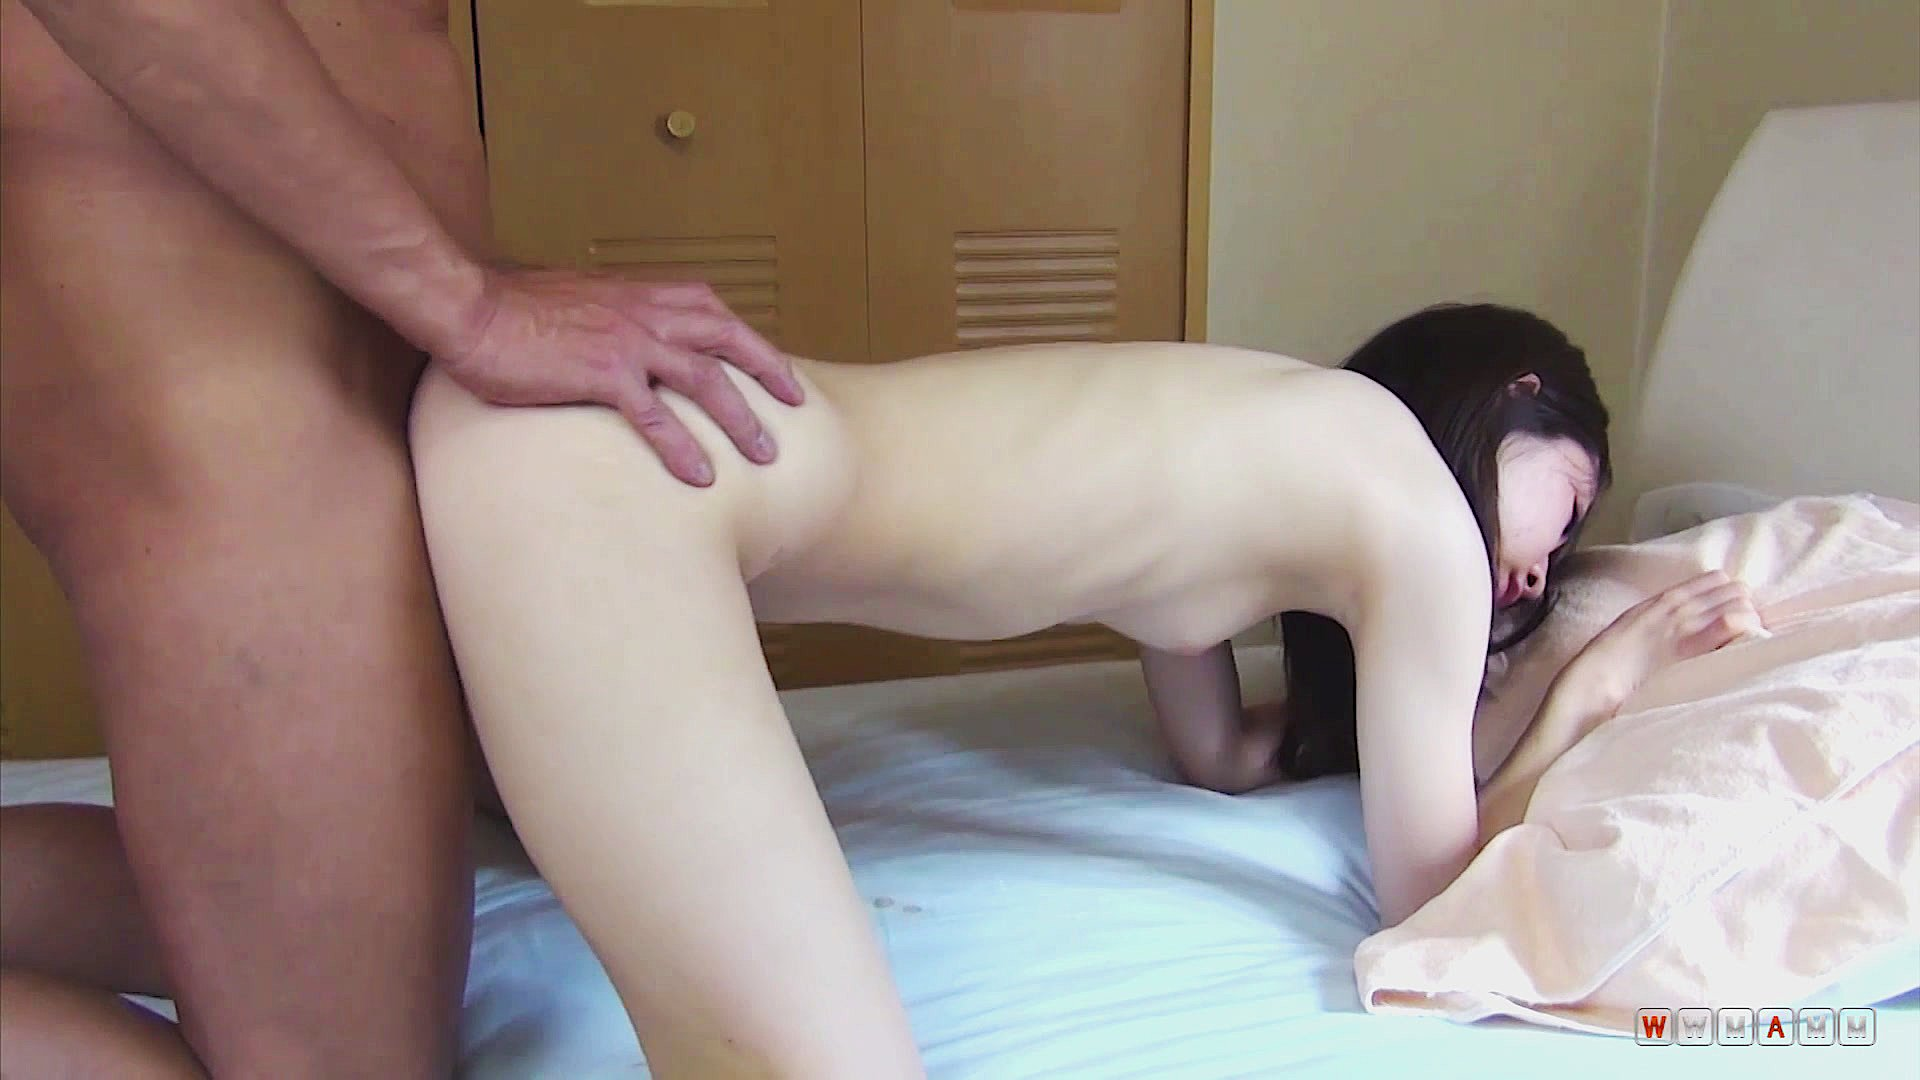 Nude Images I fucked my old girlfriend